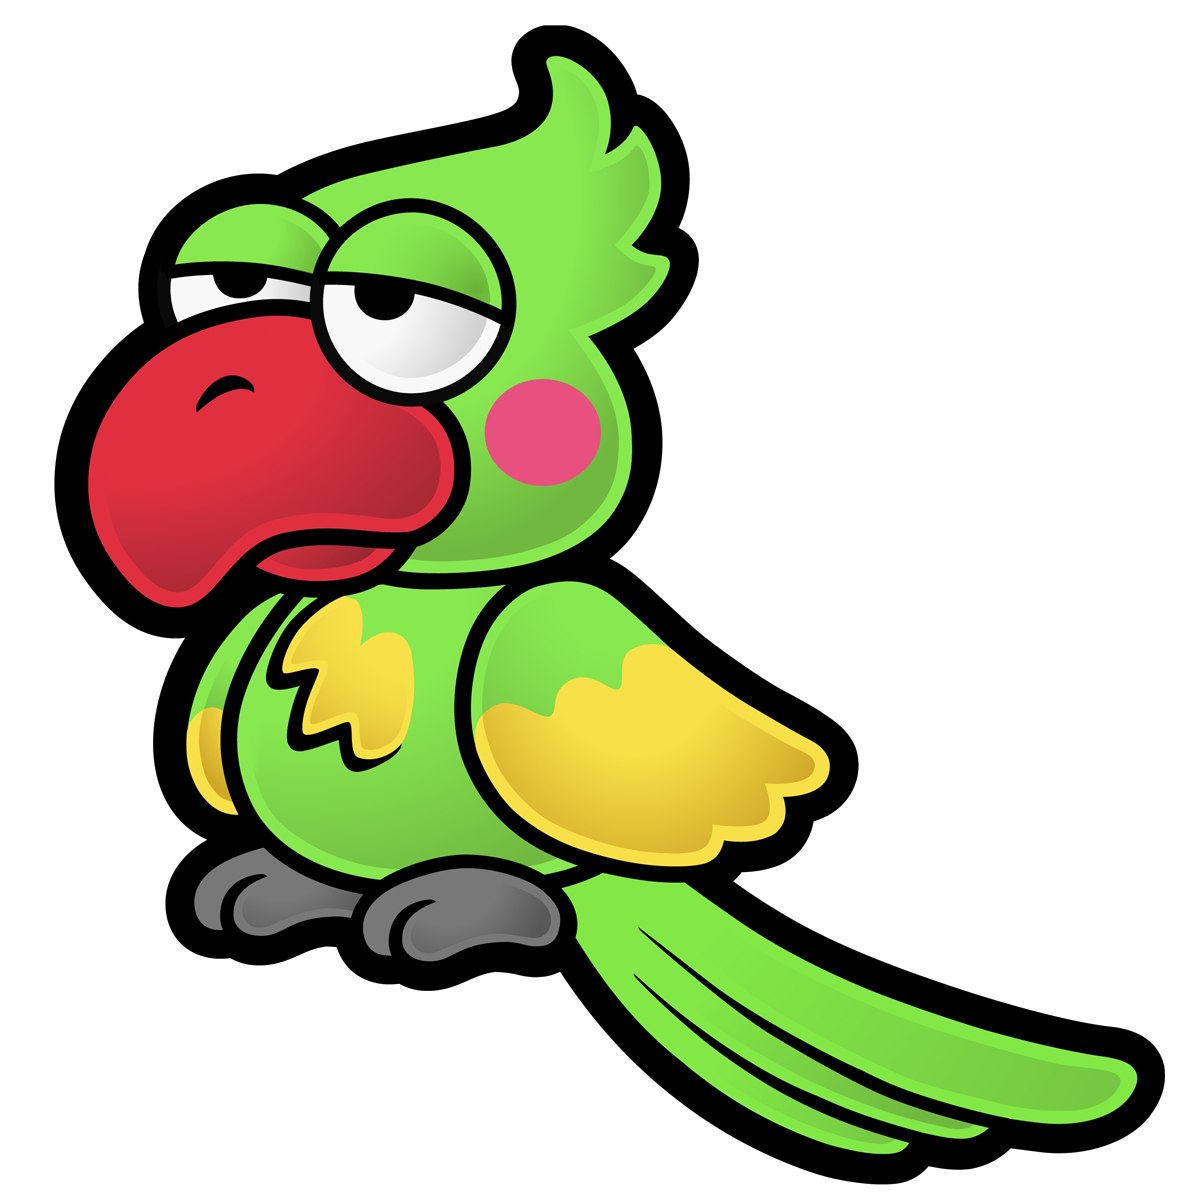 Parrot clipart mask. Image artwork the thousand